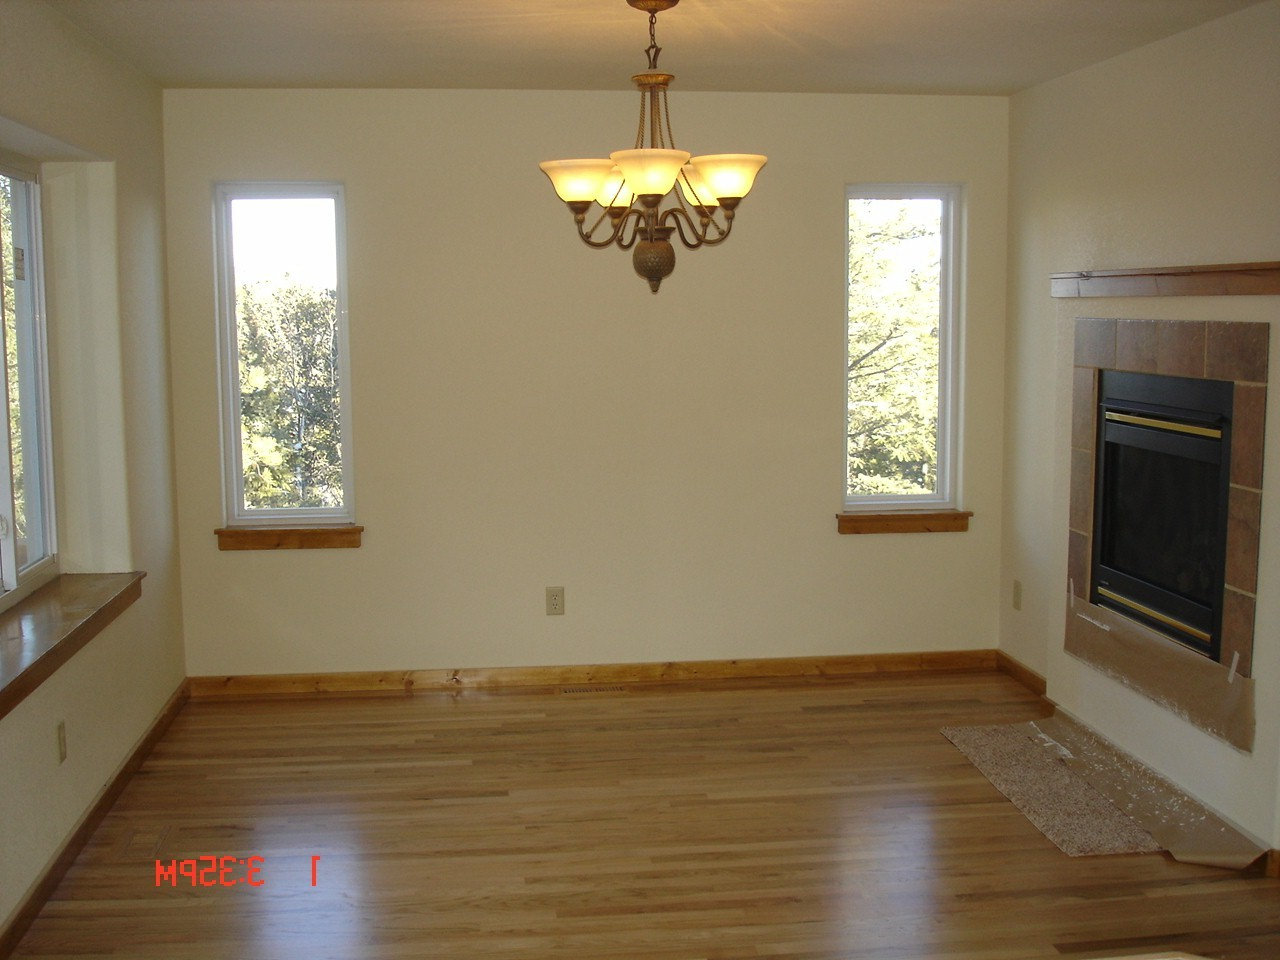 Hardwood floors in the dining room